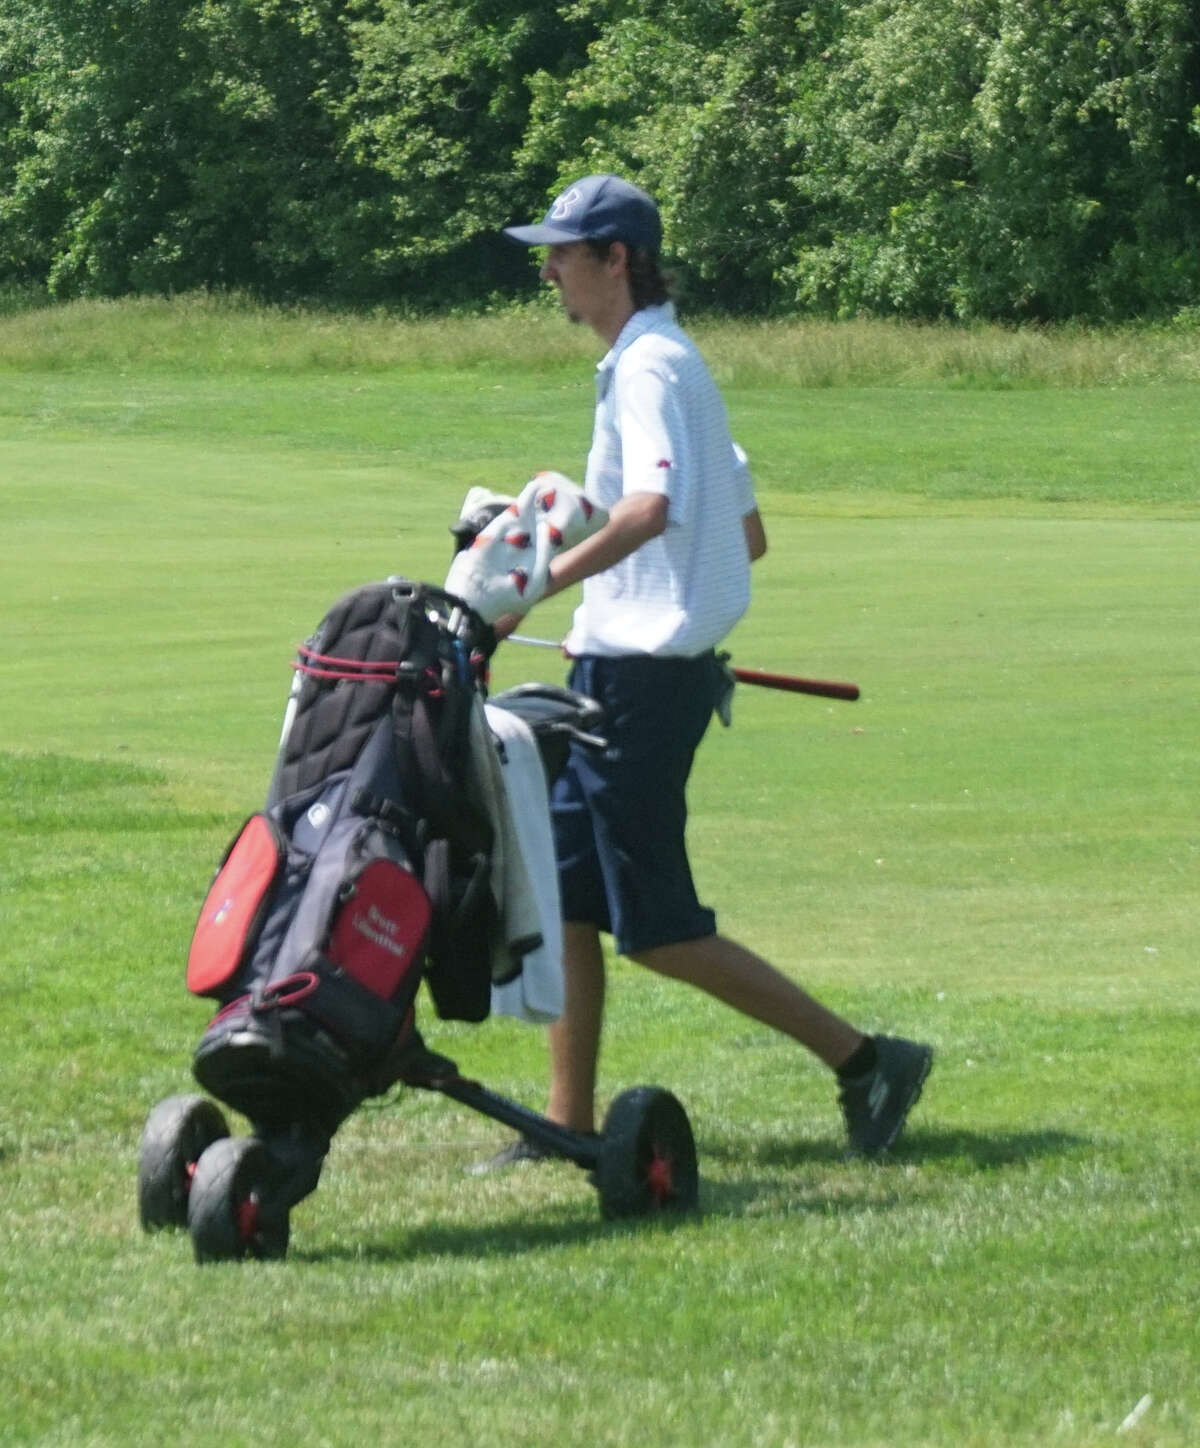 The Big Rapids boys golf team finished its 2021 season with a second-place finish in the State Finals.